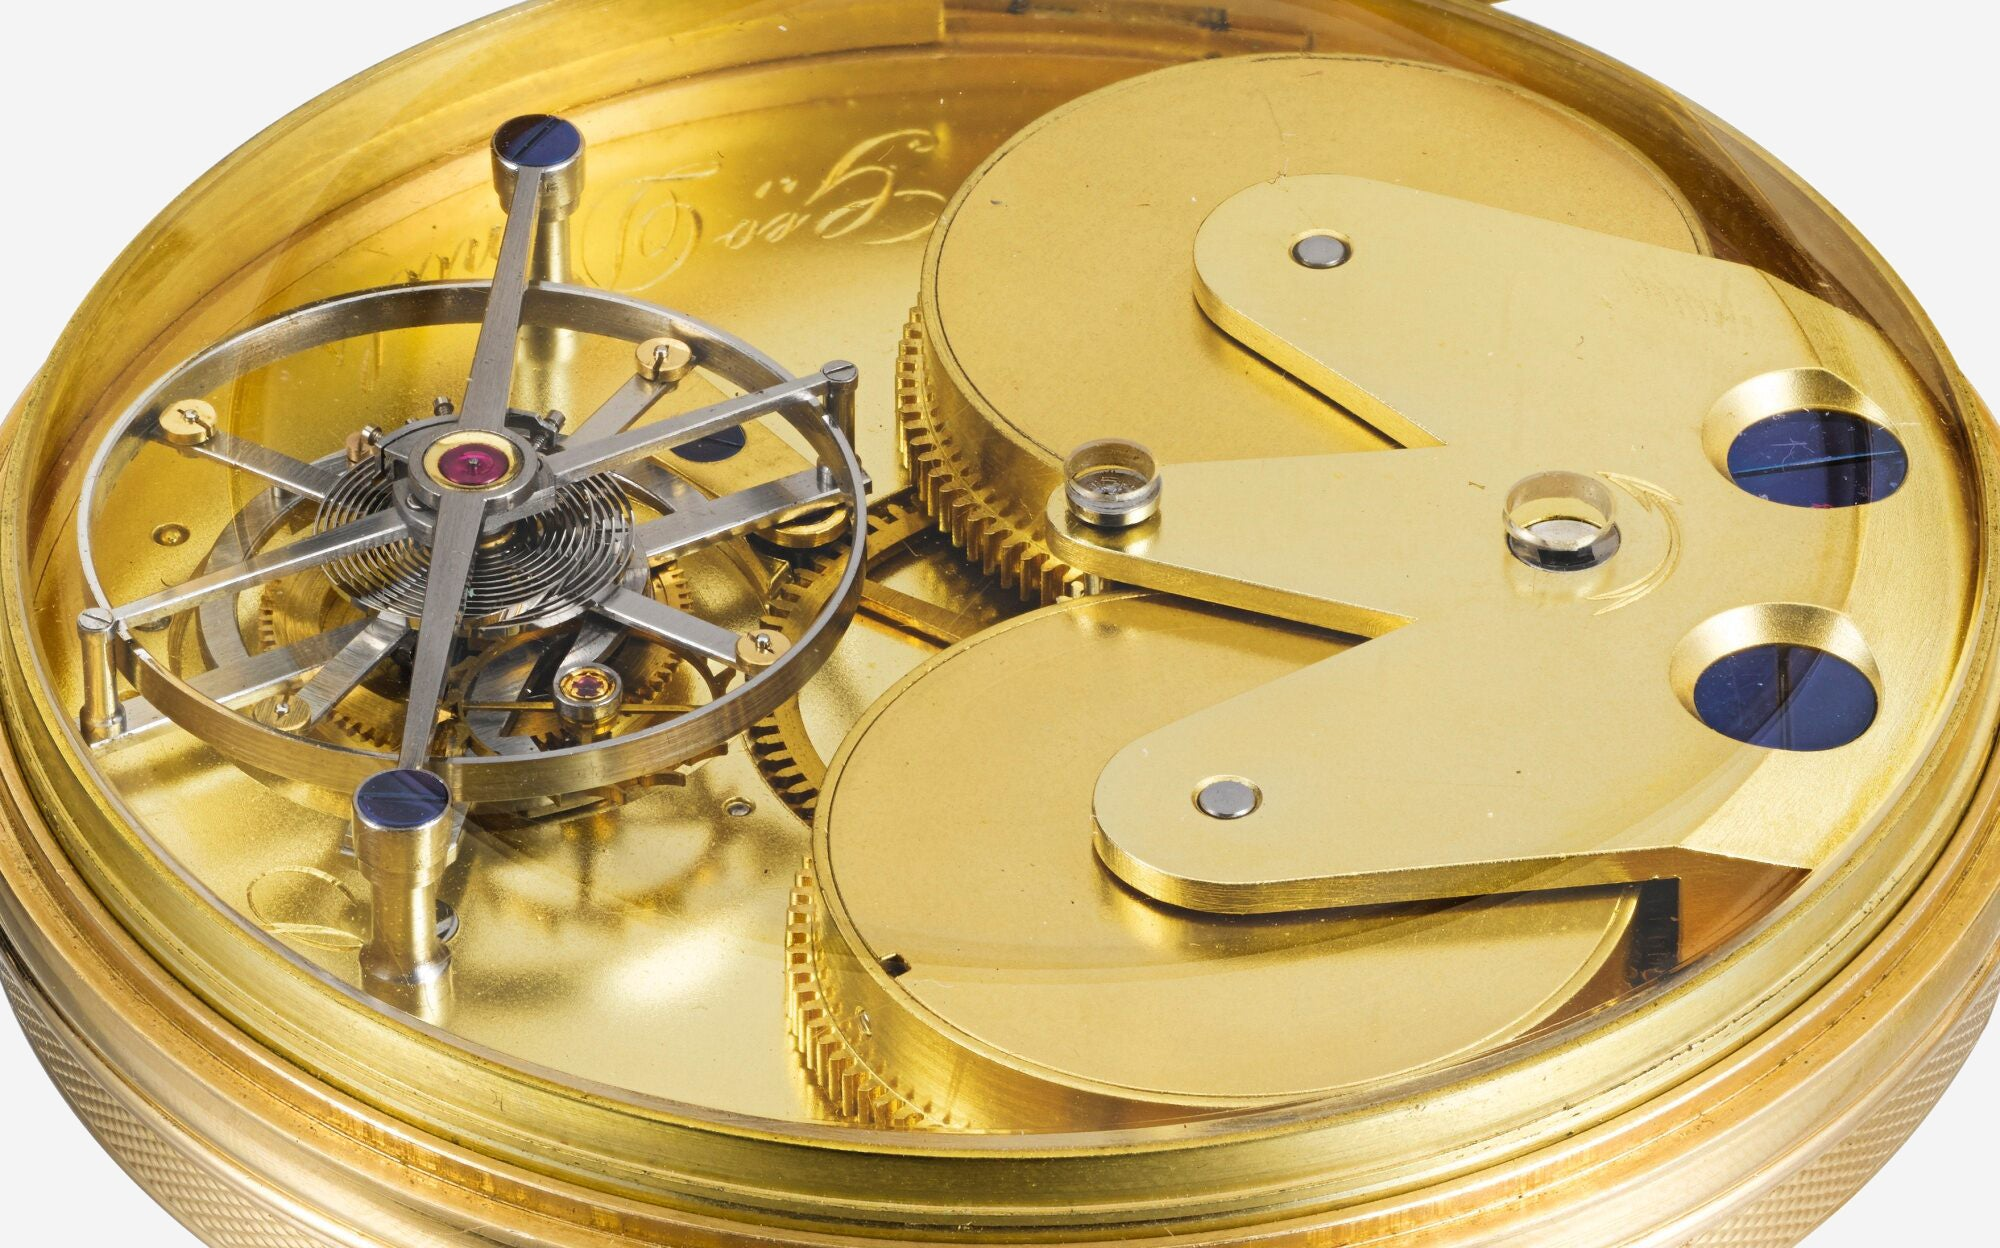 Macro shot of the movement of a tourbillon pocket watch made by George Daniels